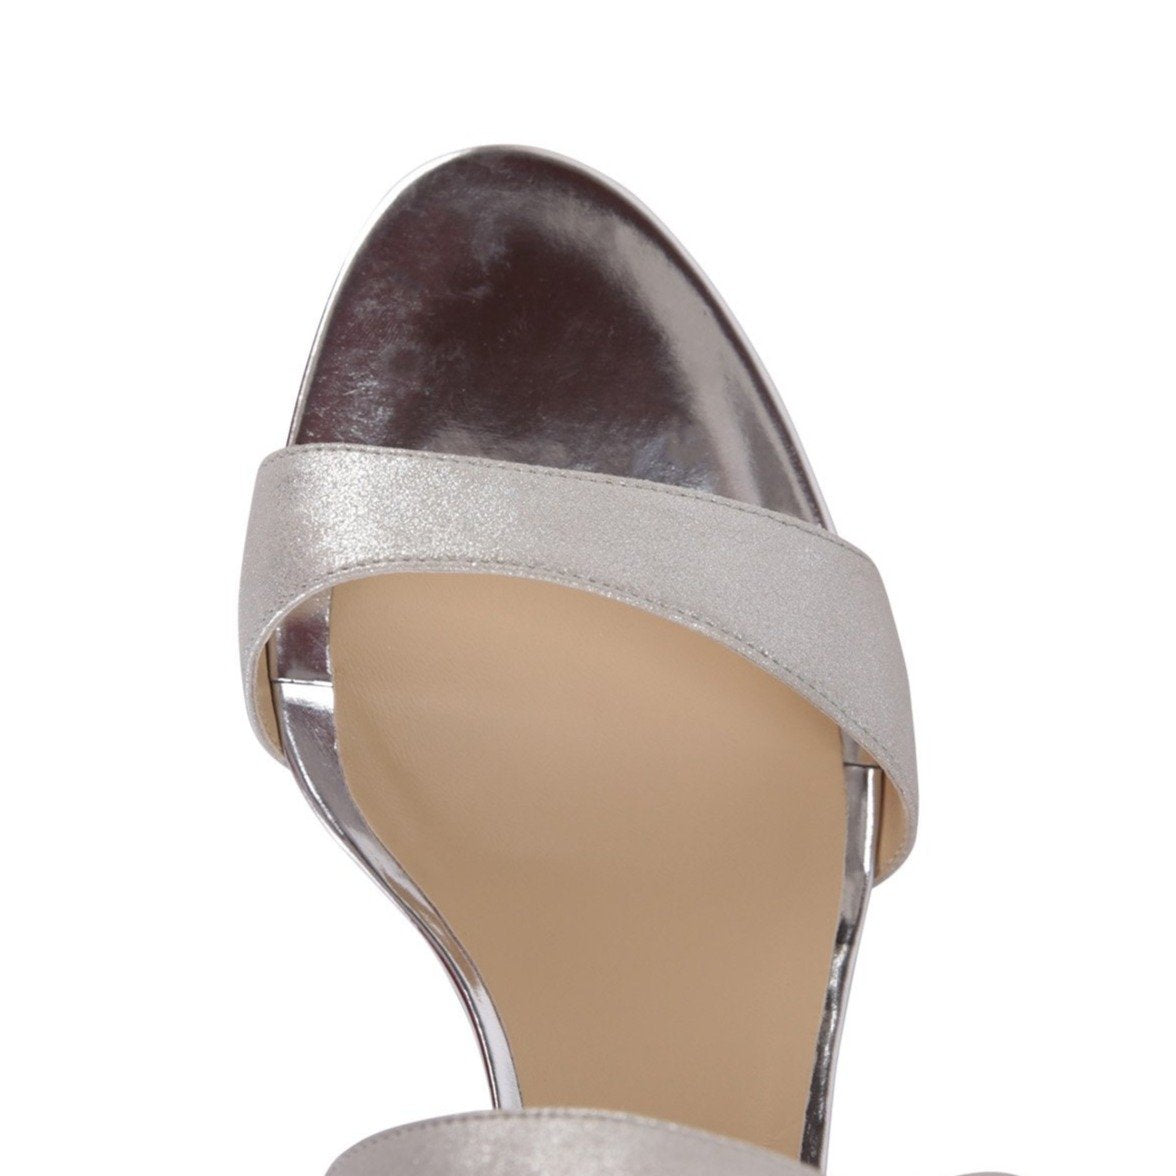 MODENA - Burma Argento + Metallic Wedge, VIAJIYU - Women's Hand Made Sustainable Luxury Shoes. Made in Italy. Made to Order.